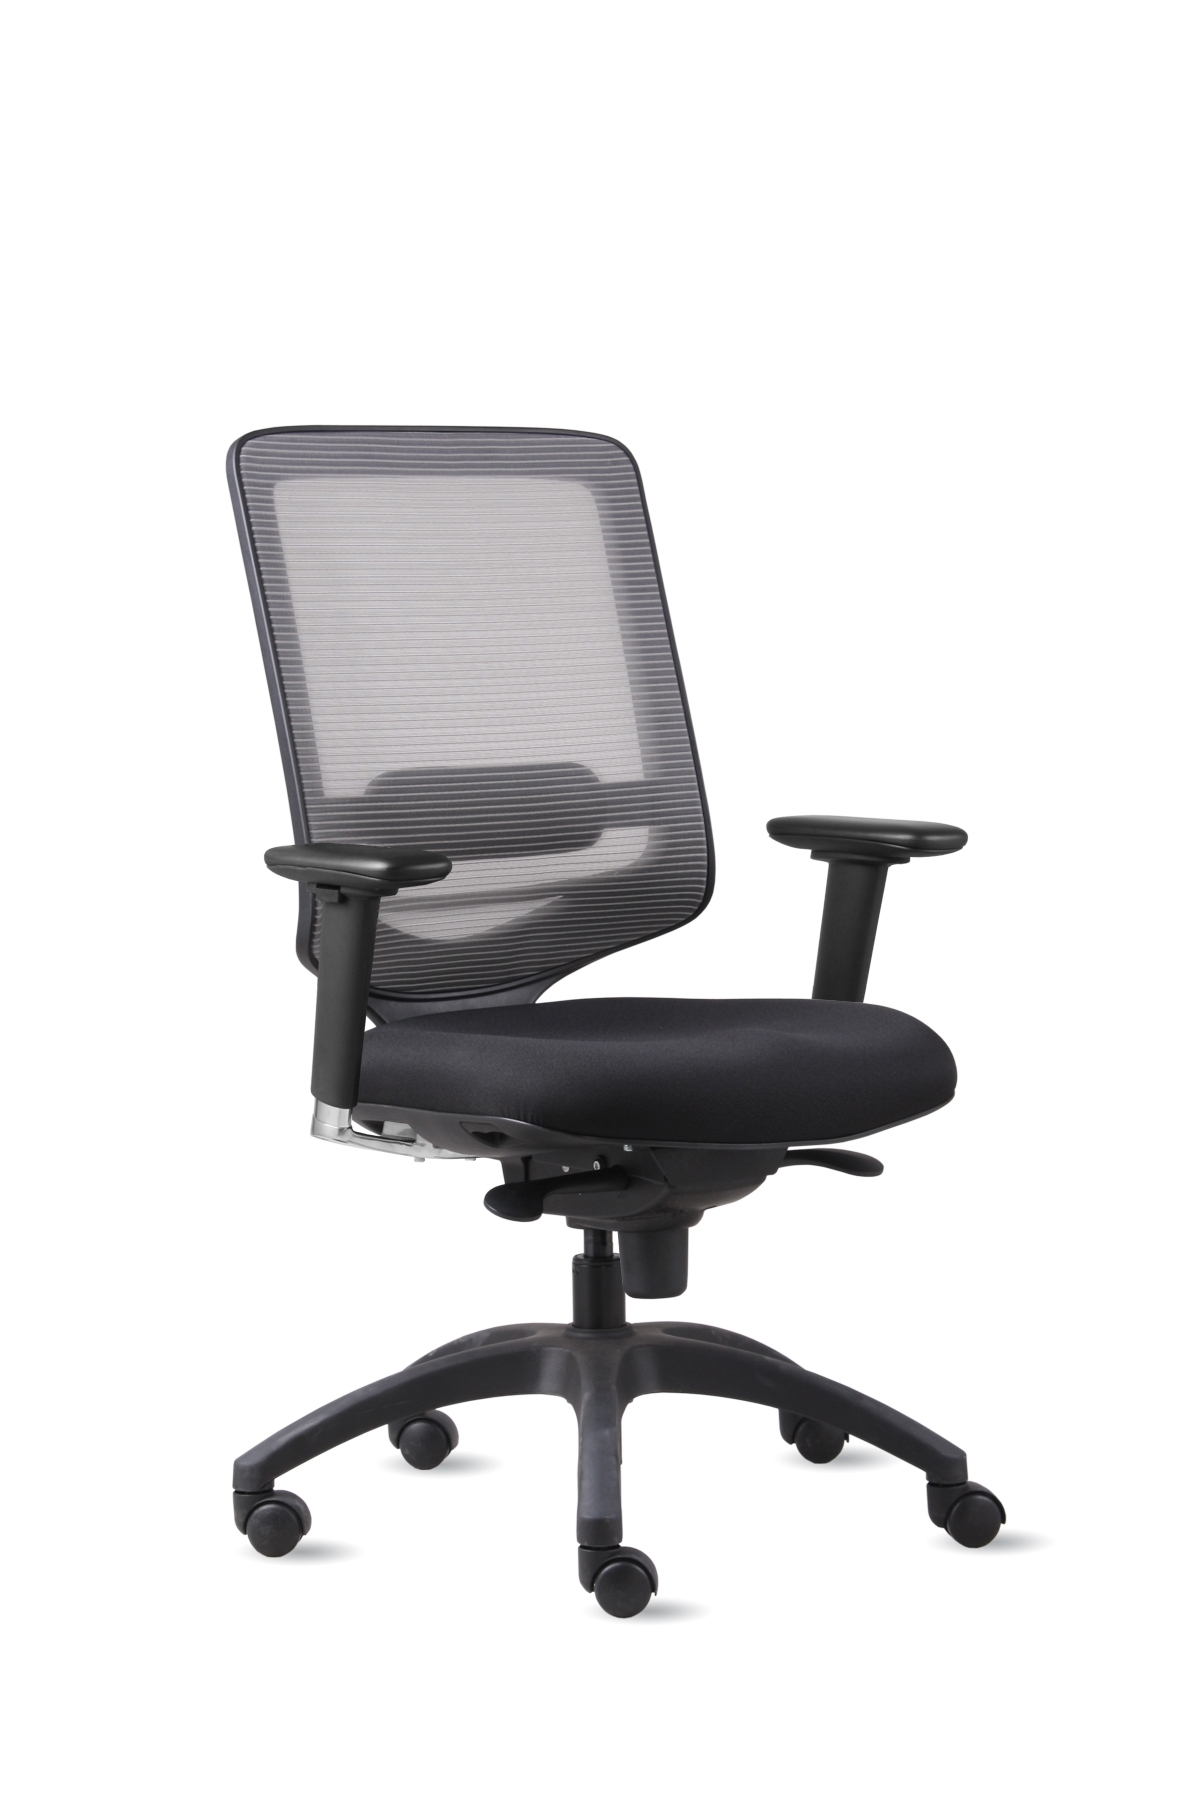 Direct Ergonomics | Sydney Office Furniture | Ergonomic Furniture | Ergonomic Seating | Excutive and Task Seating | Meeting Room Chair | Breeze 300